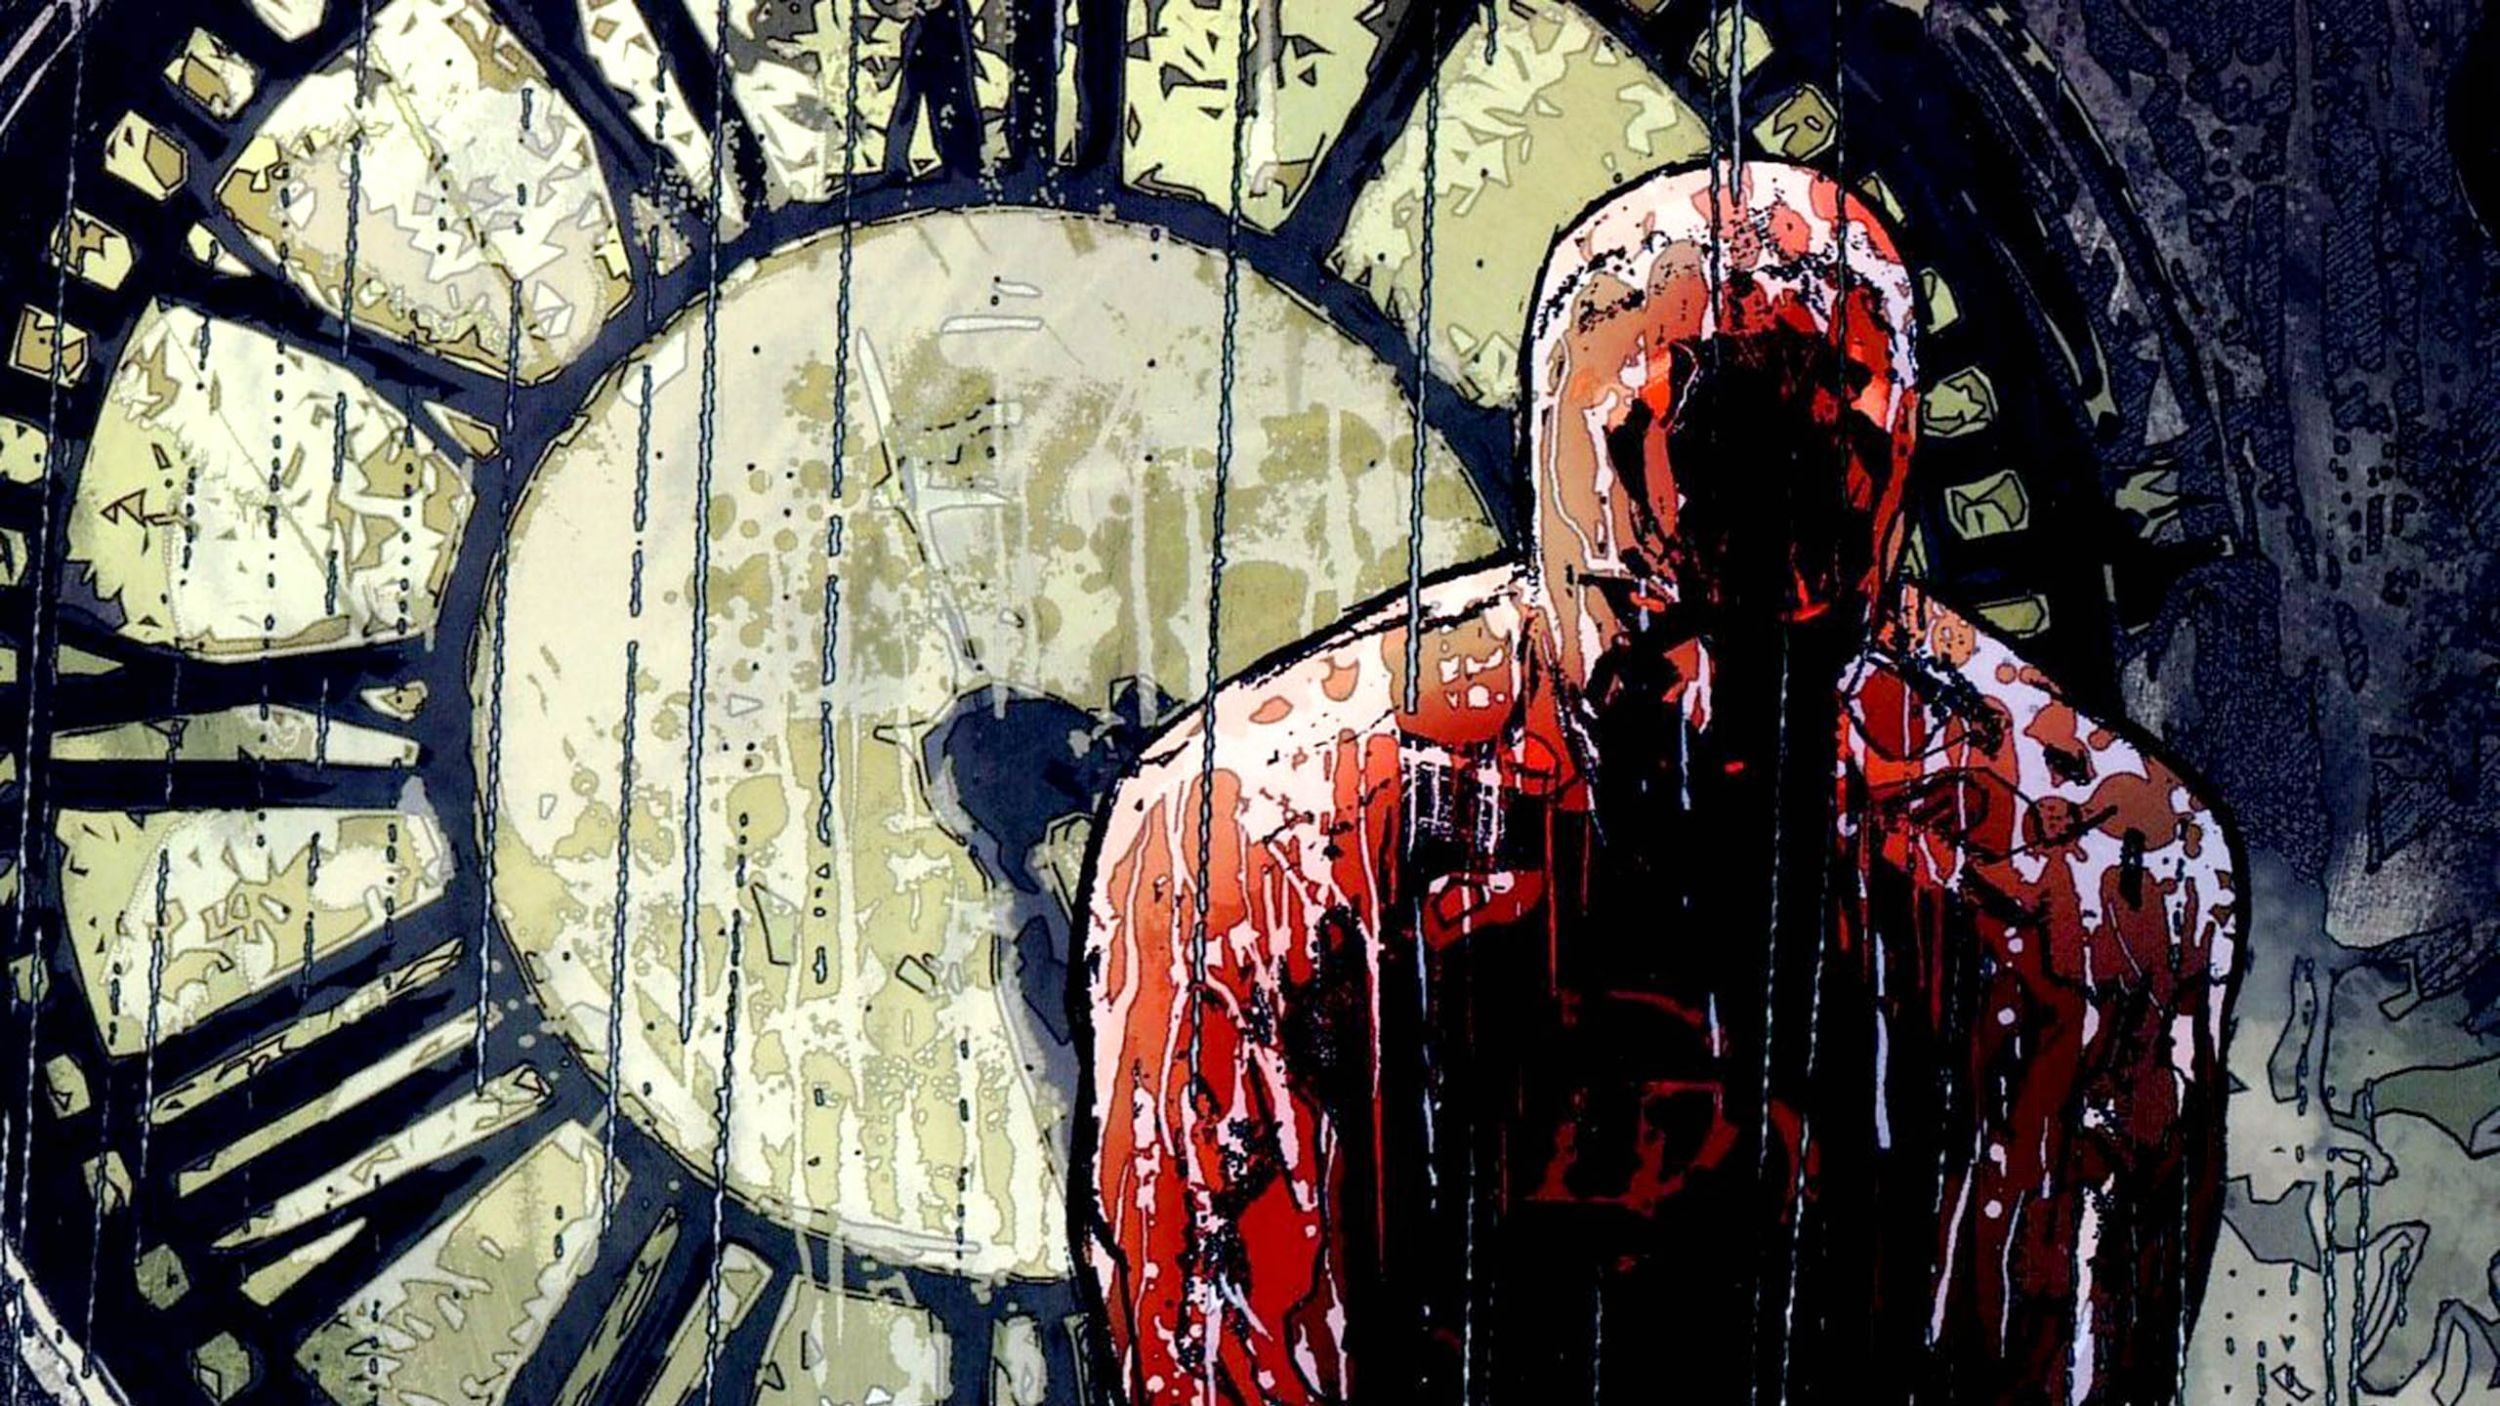 Res: 2500x1406, HD Widescreen Wallpaper – Background, 2560x1440 Daredevil for PC & Mac,  Laptop, Tablet, Mobile Phone